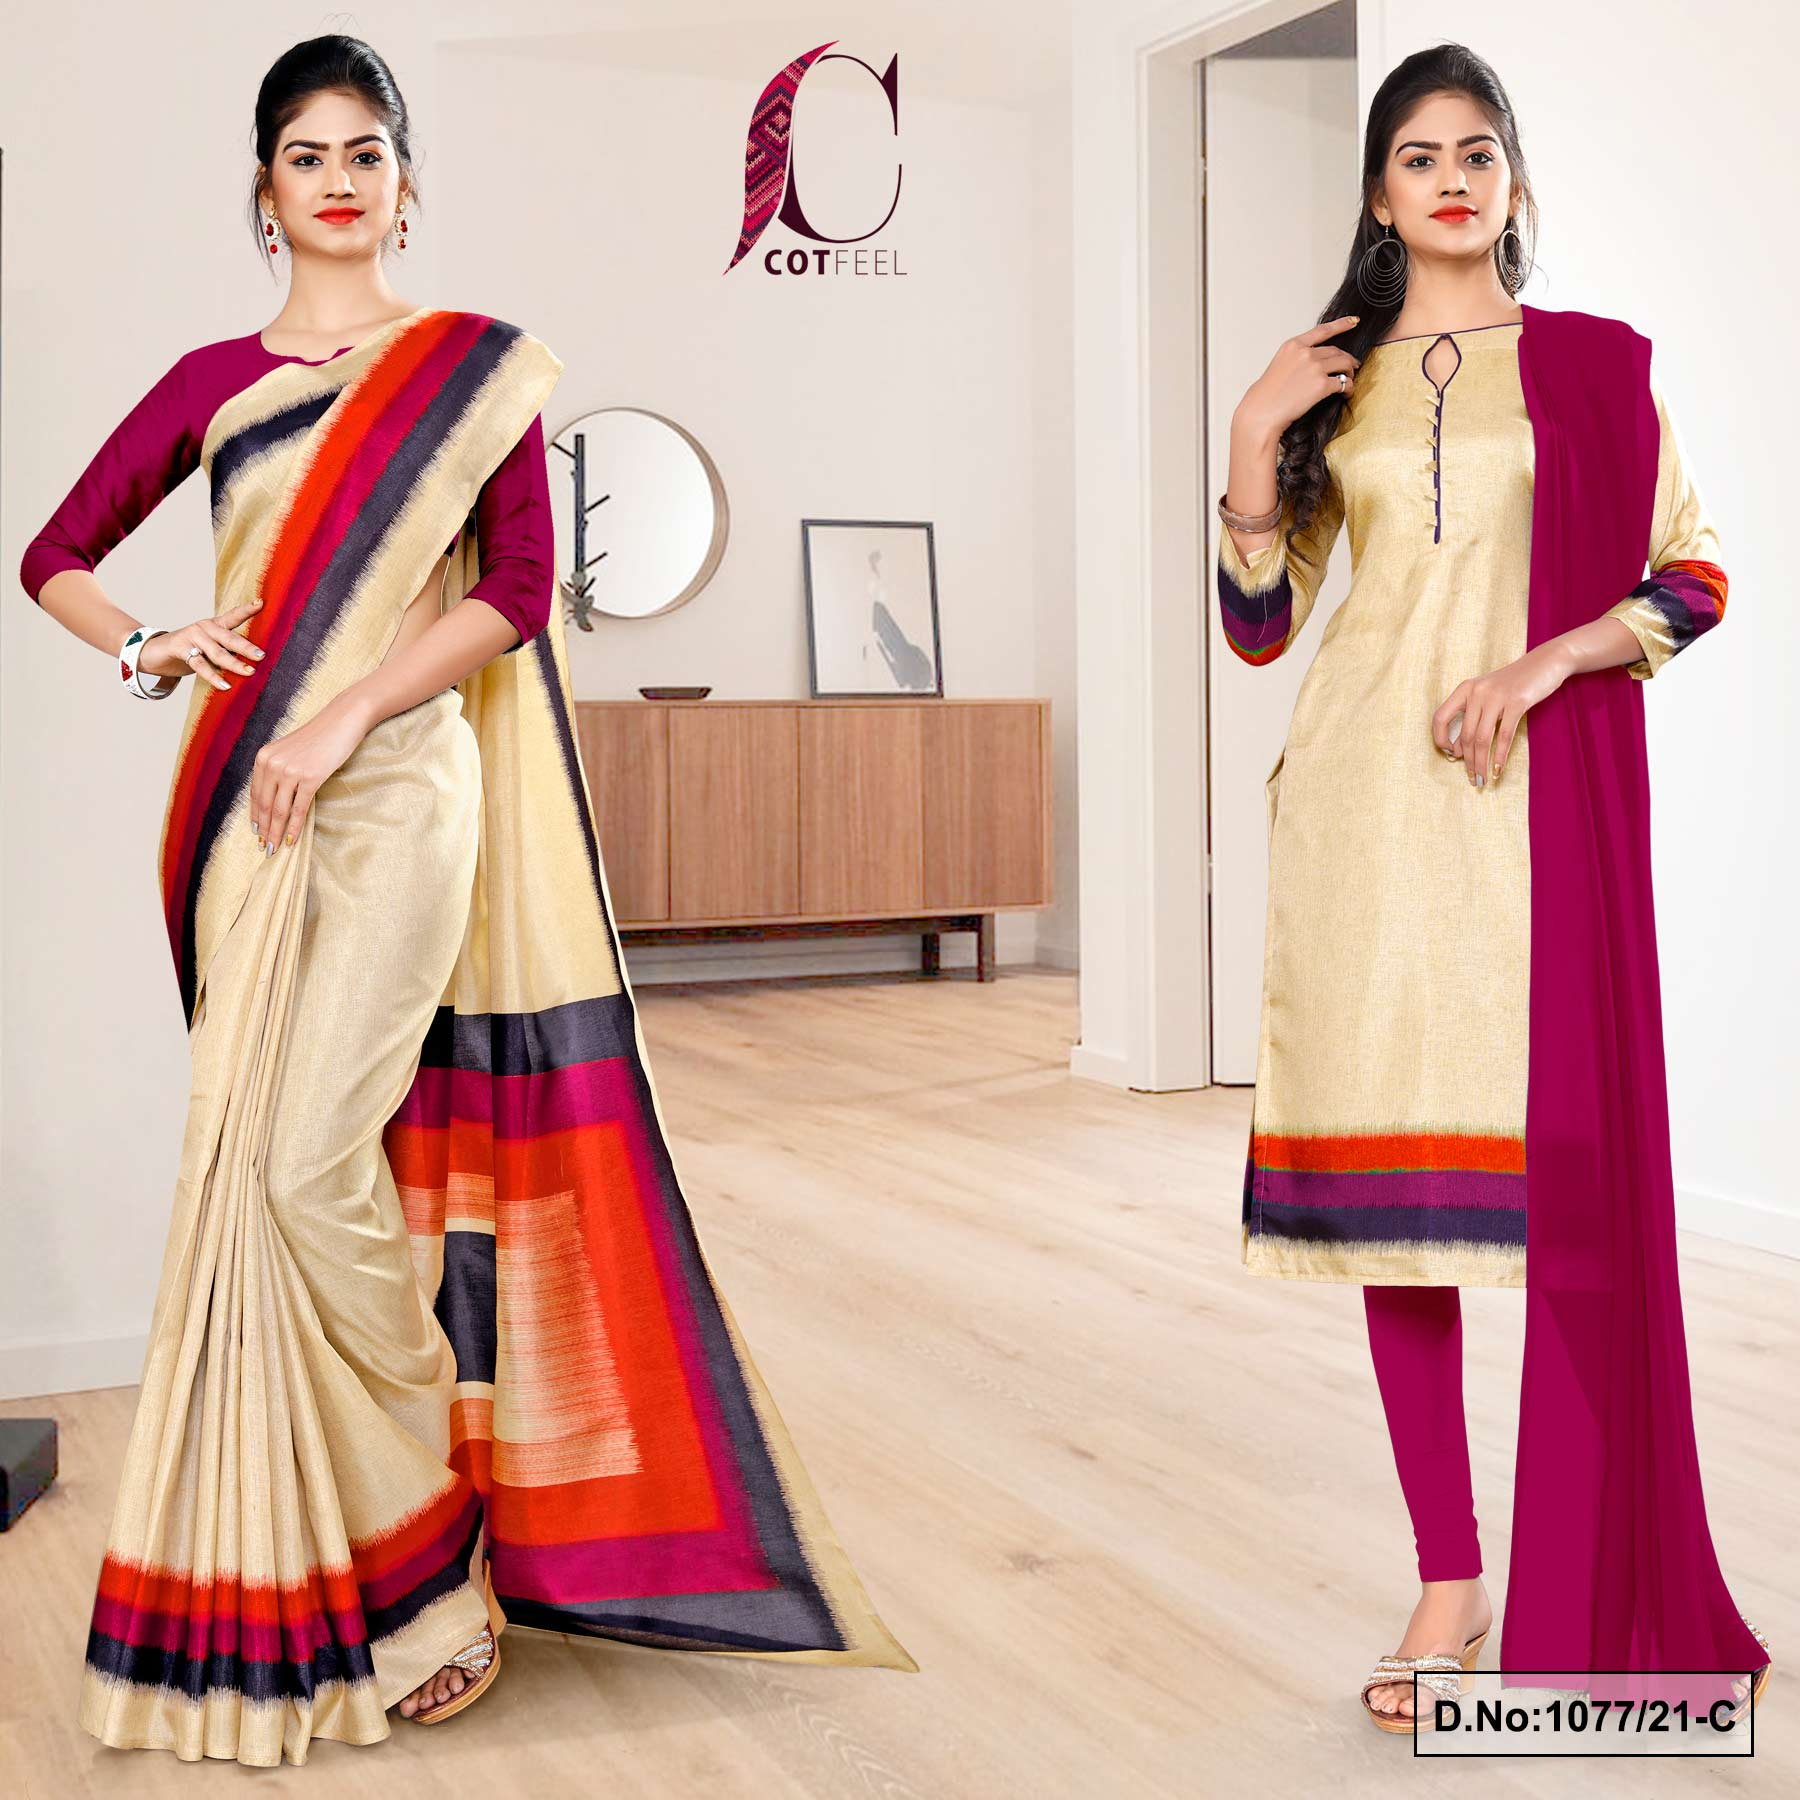 Beige Wine Gala Border Premium Polycotton CotFeel Saree Salwar Combo for Front Office Uniform Sarees 1077